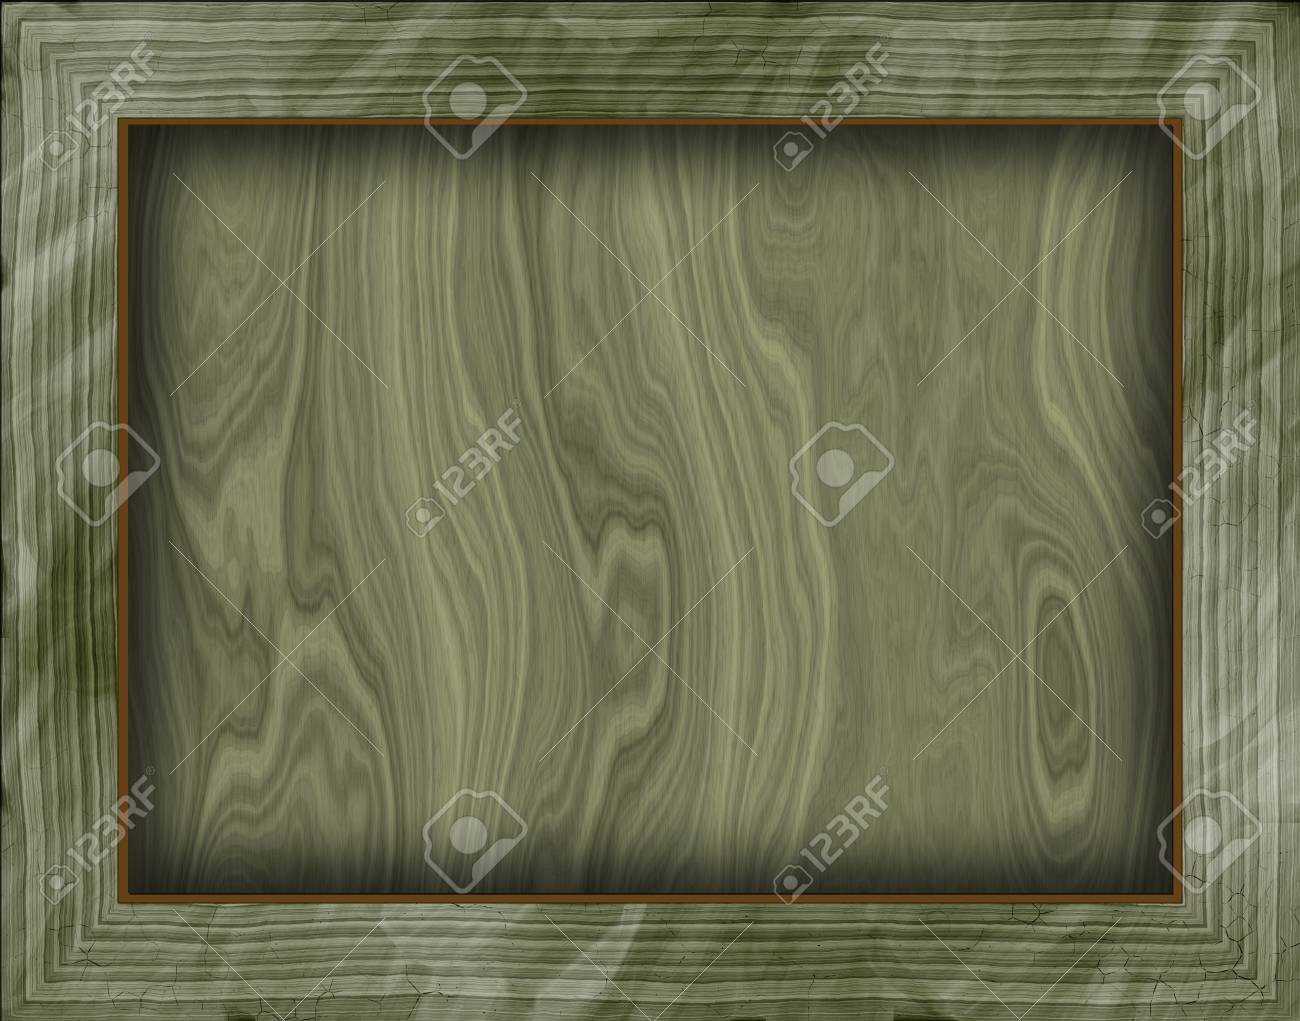 Wooden frame Stock Photo - 17947488